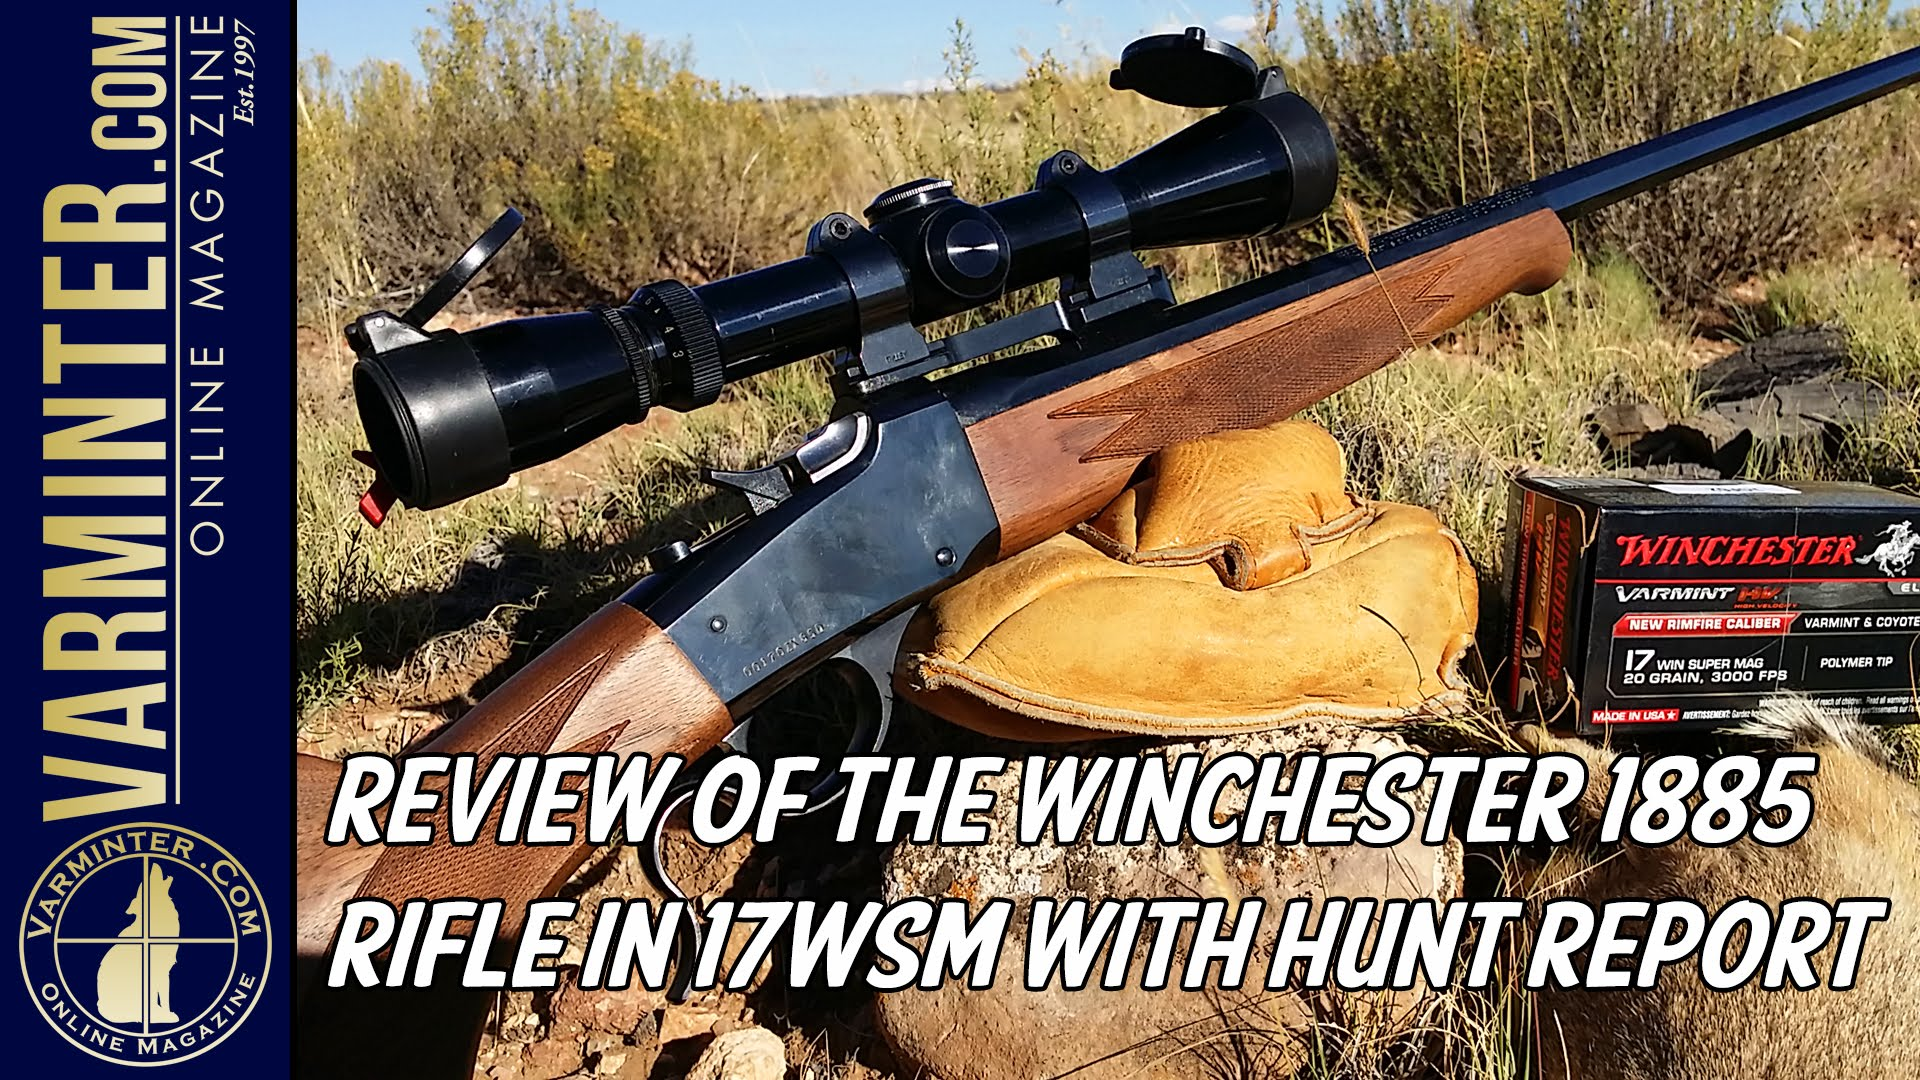 Review of the Winchester 1885 Rifle in 17WSM with Hunt